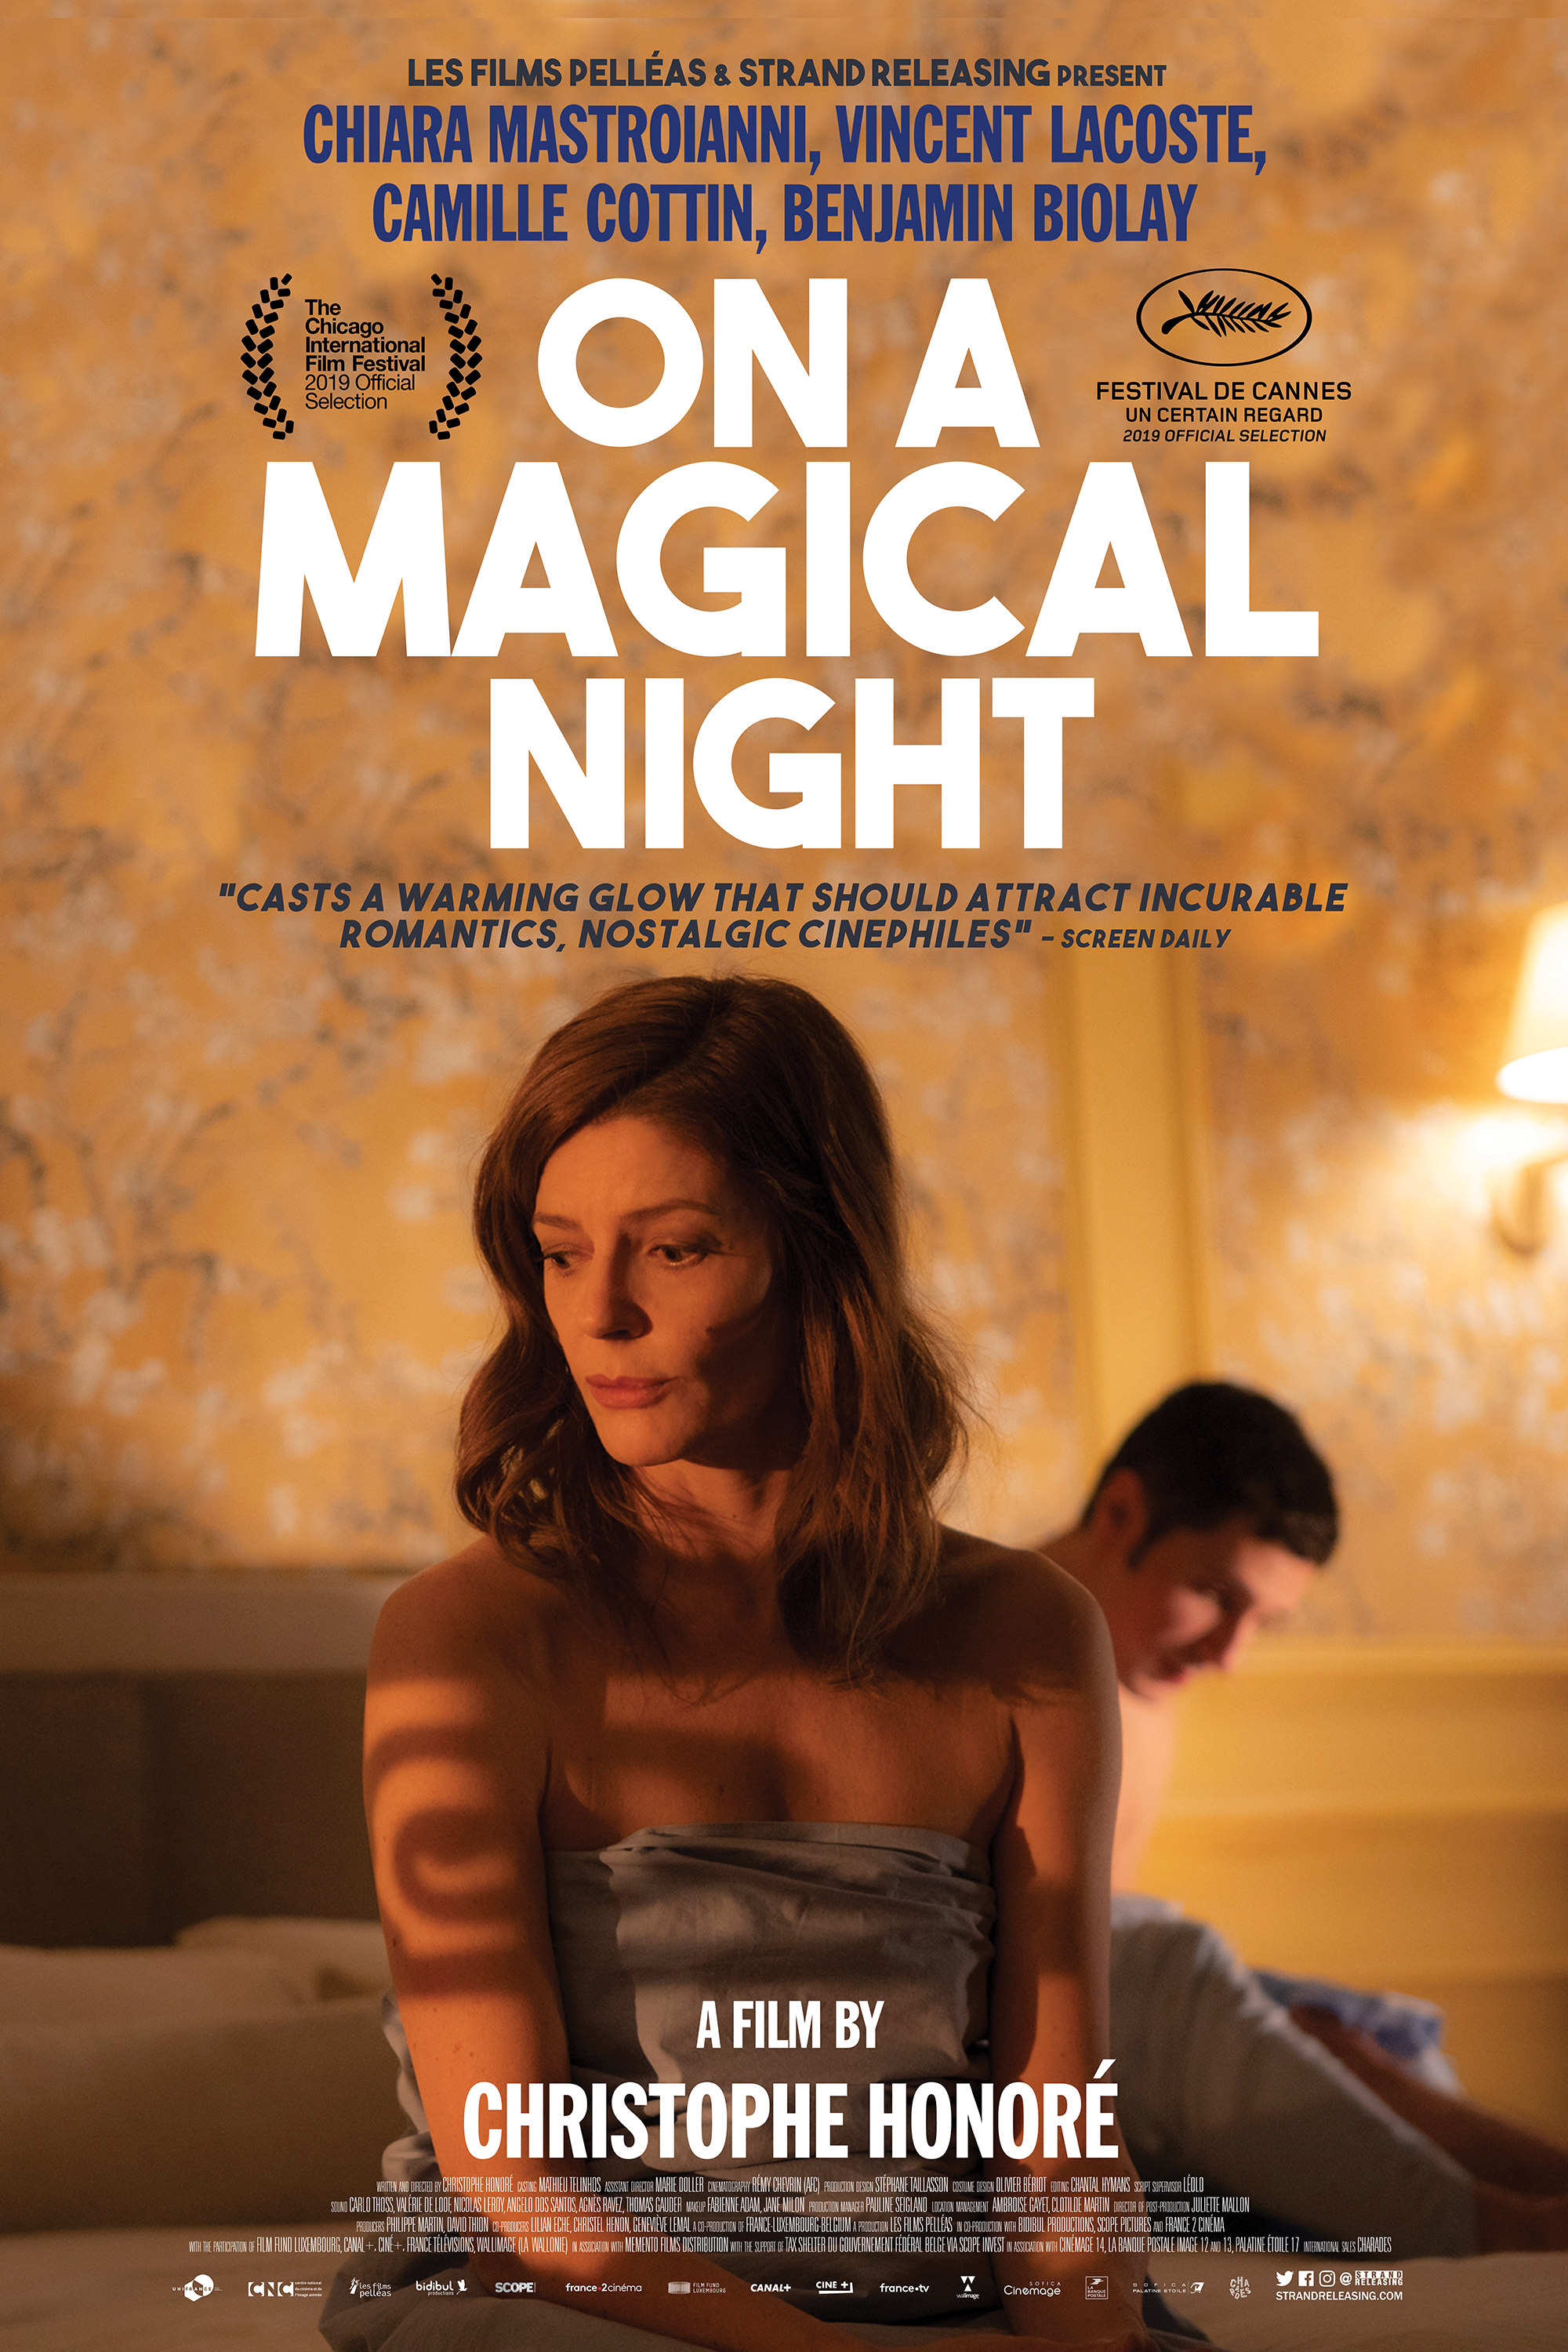 Poster for On a Magical Night